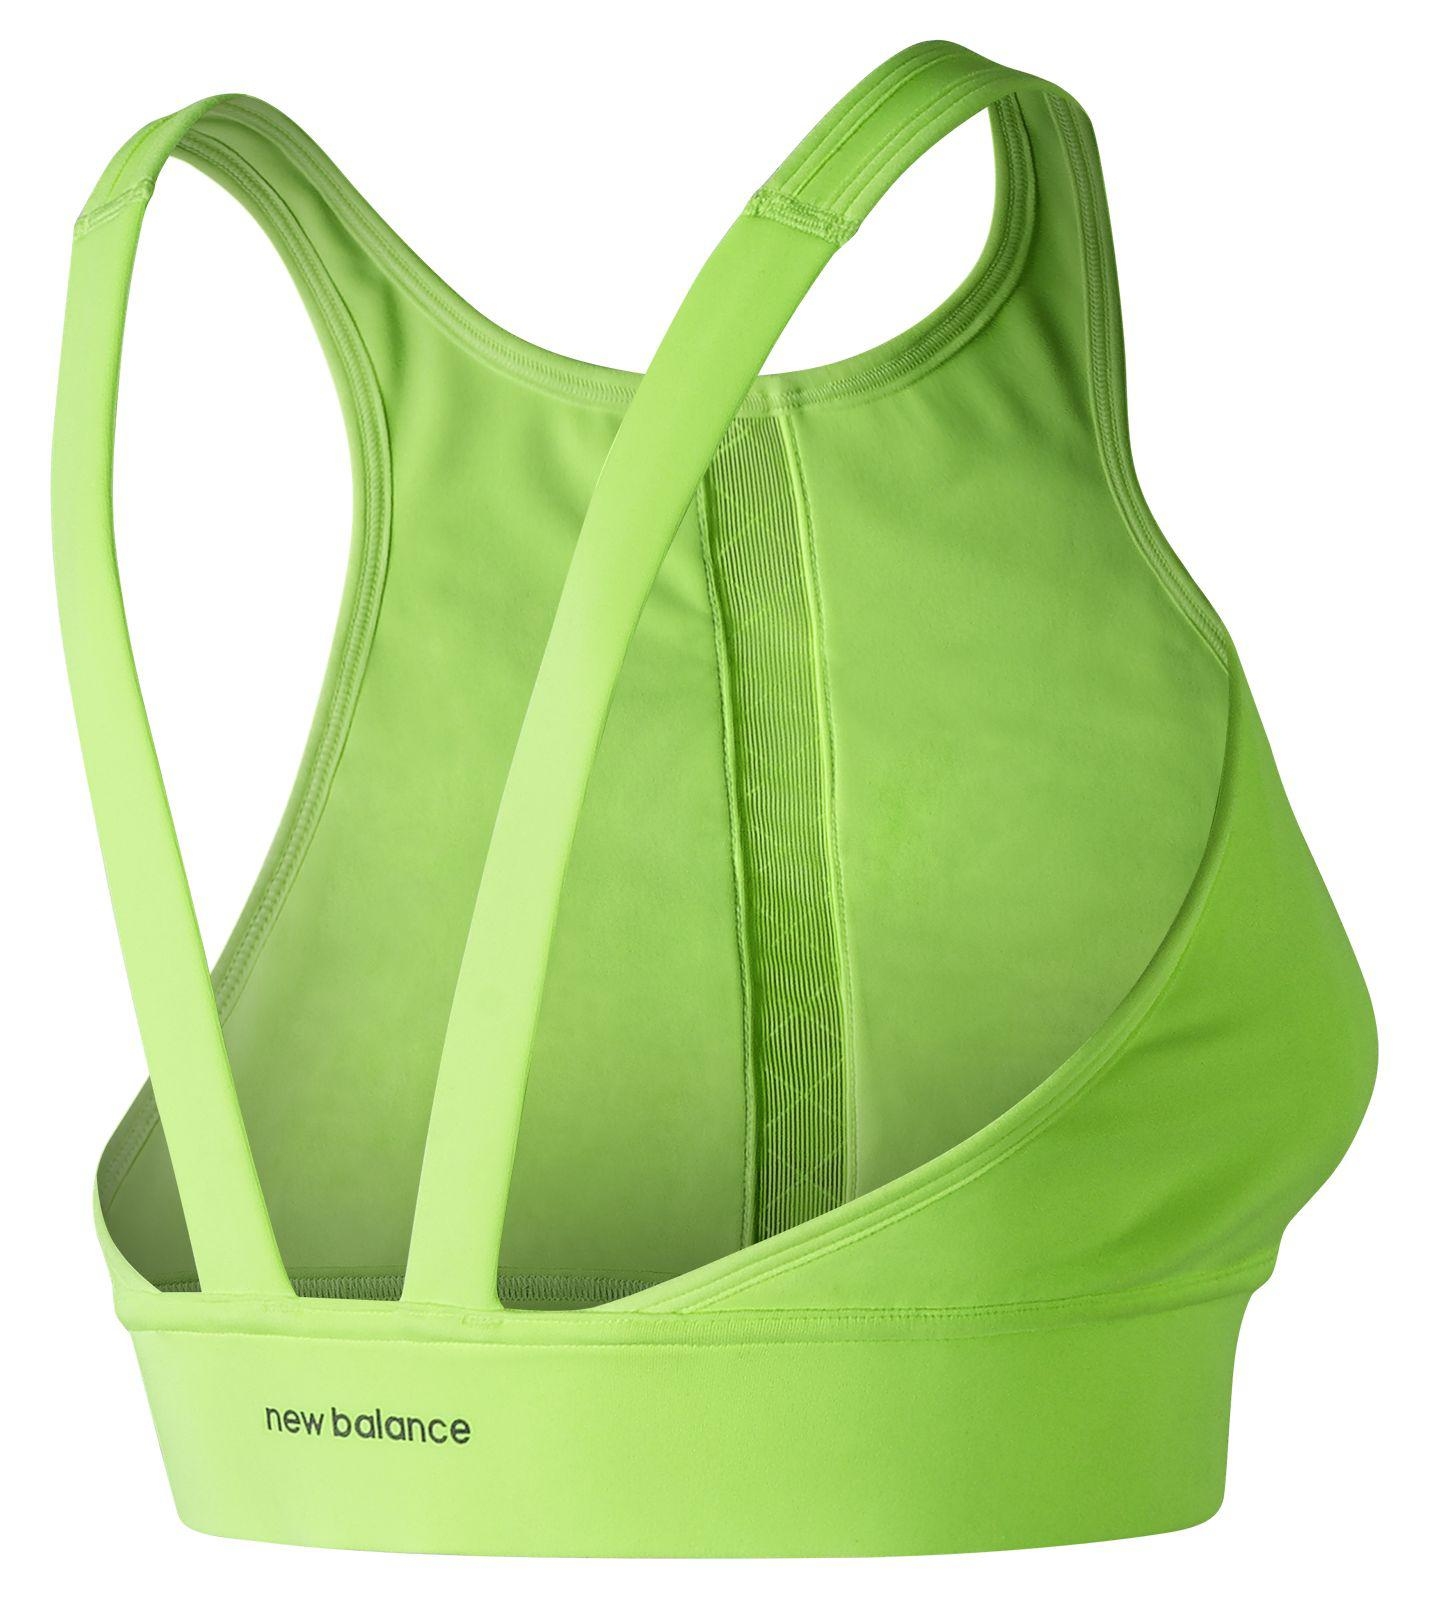 940c7925048ab New Balance - Green Nb Beyond Bra - Lyst. View fullscreen